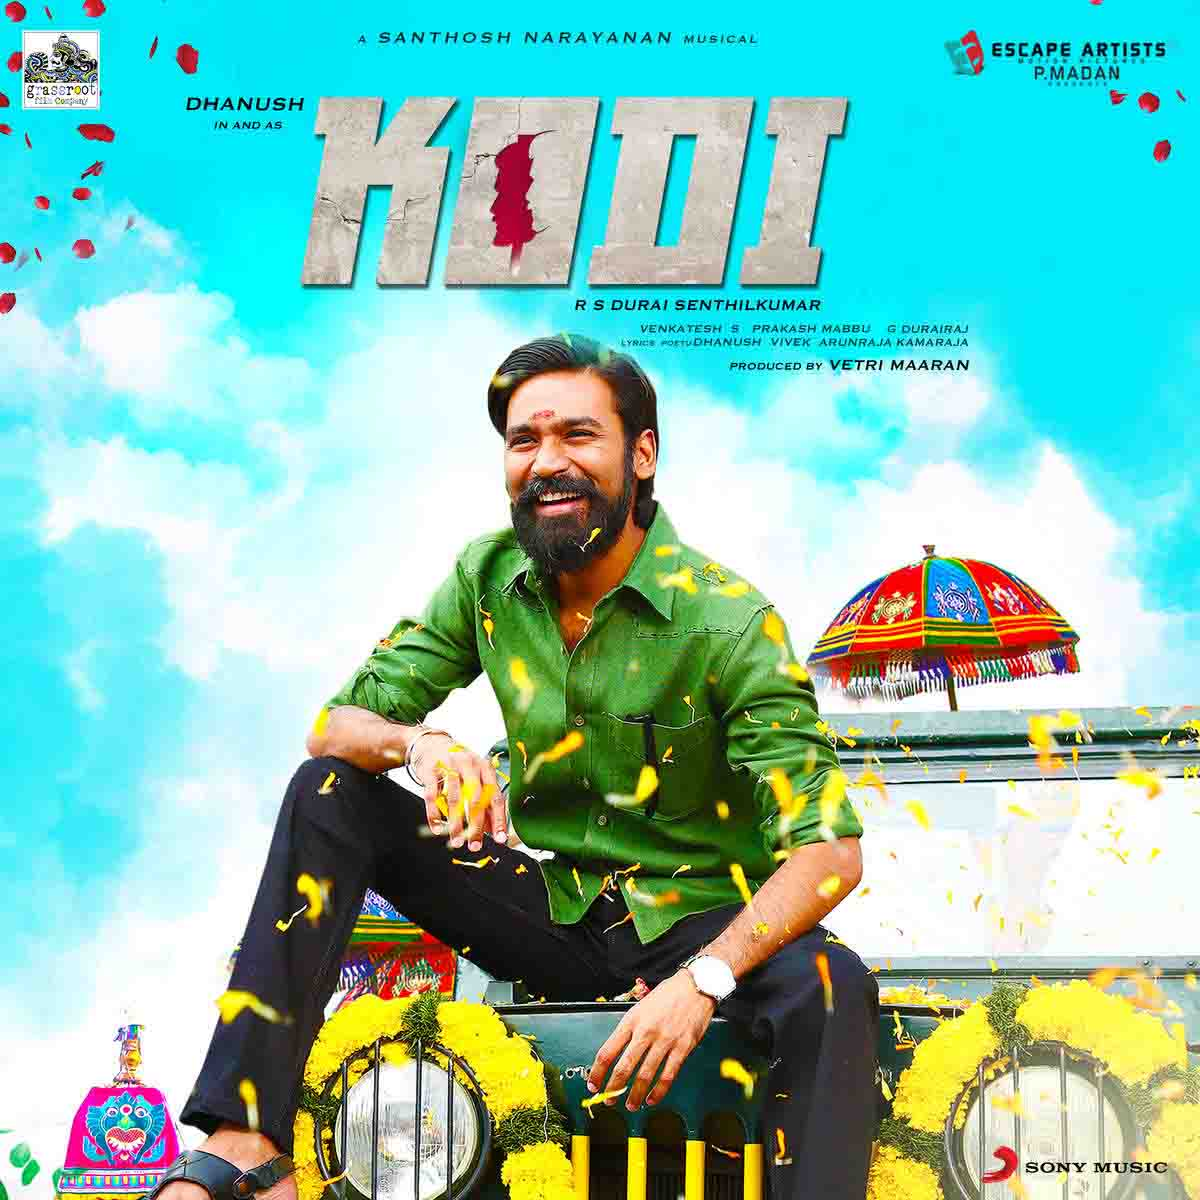 Kodi photos: hd images, pictures, stills, first look posters of.